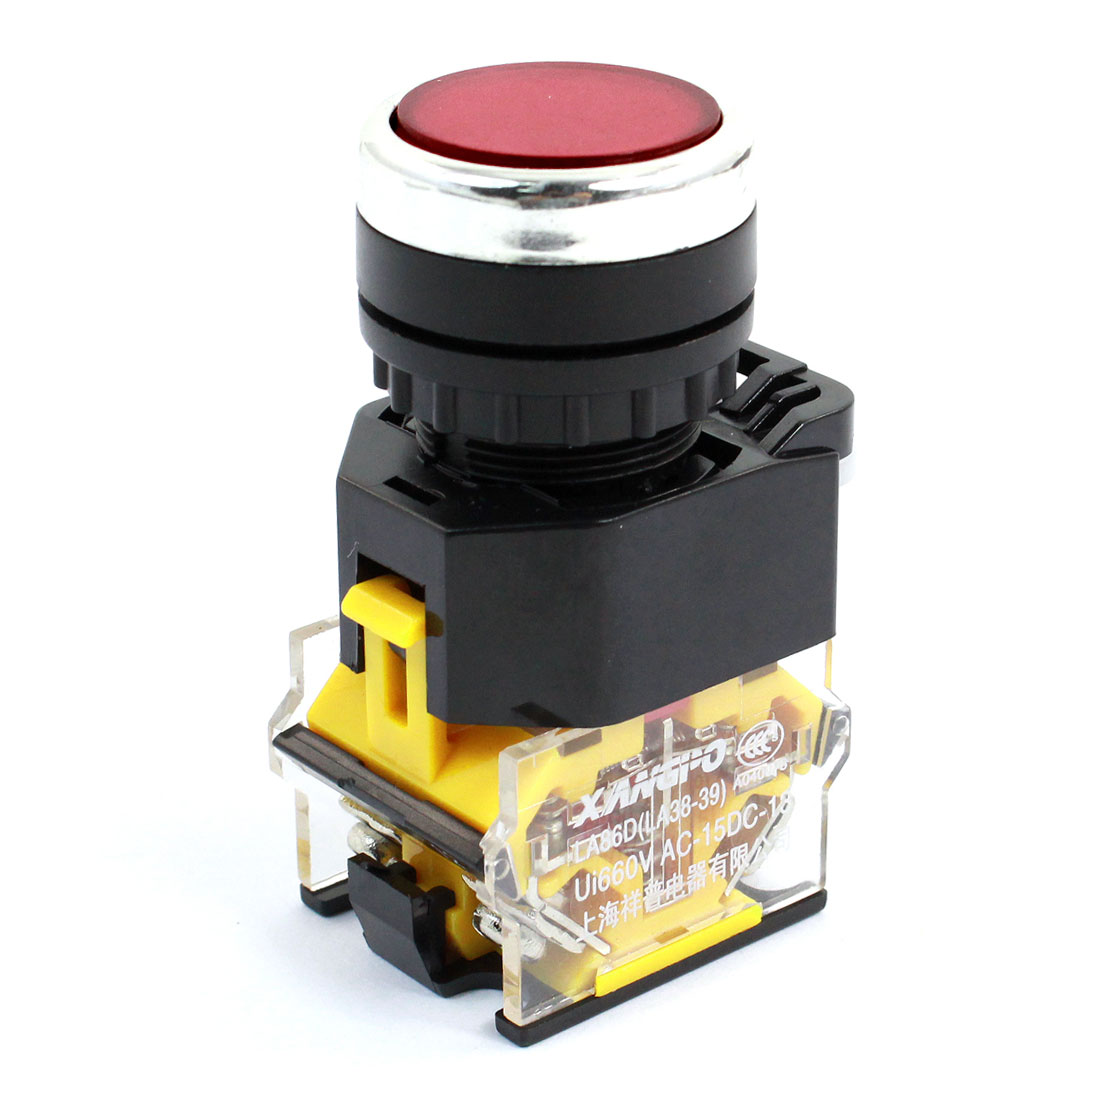 Ui 660V 21mm Thread Panel Mounting DPST 1NO 1NC 4 Screw Terminal Momentary Action Plastic Push Button Switch